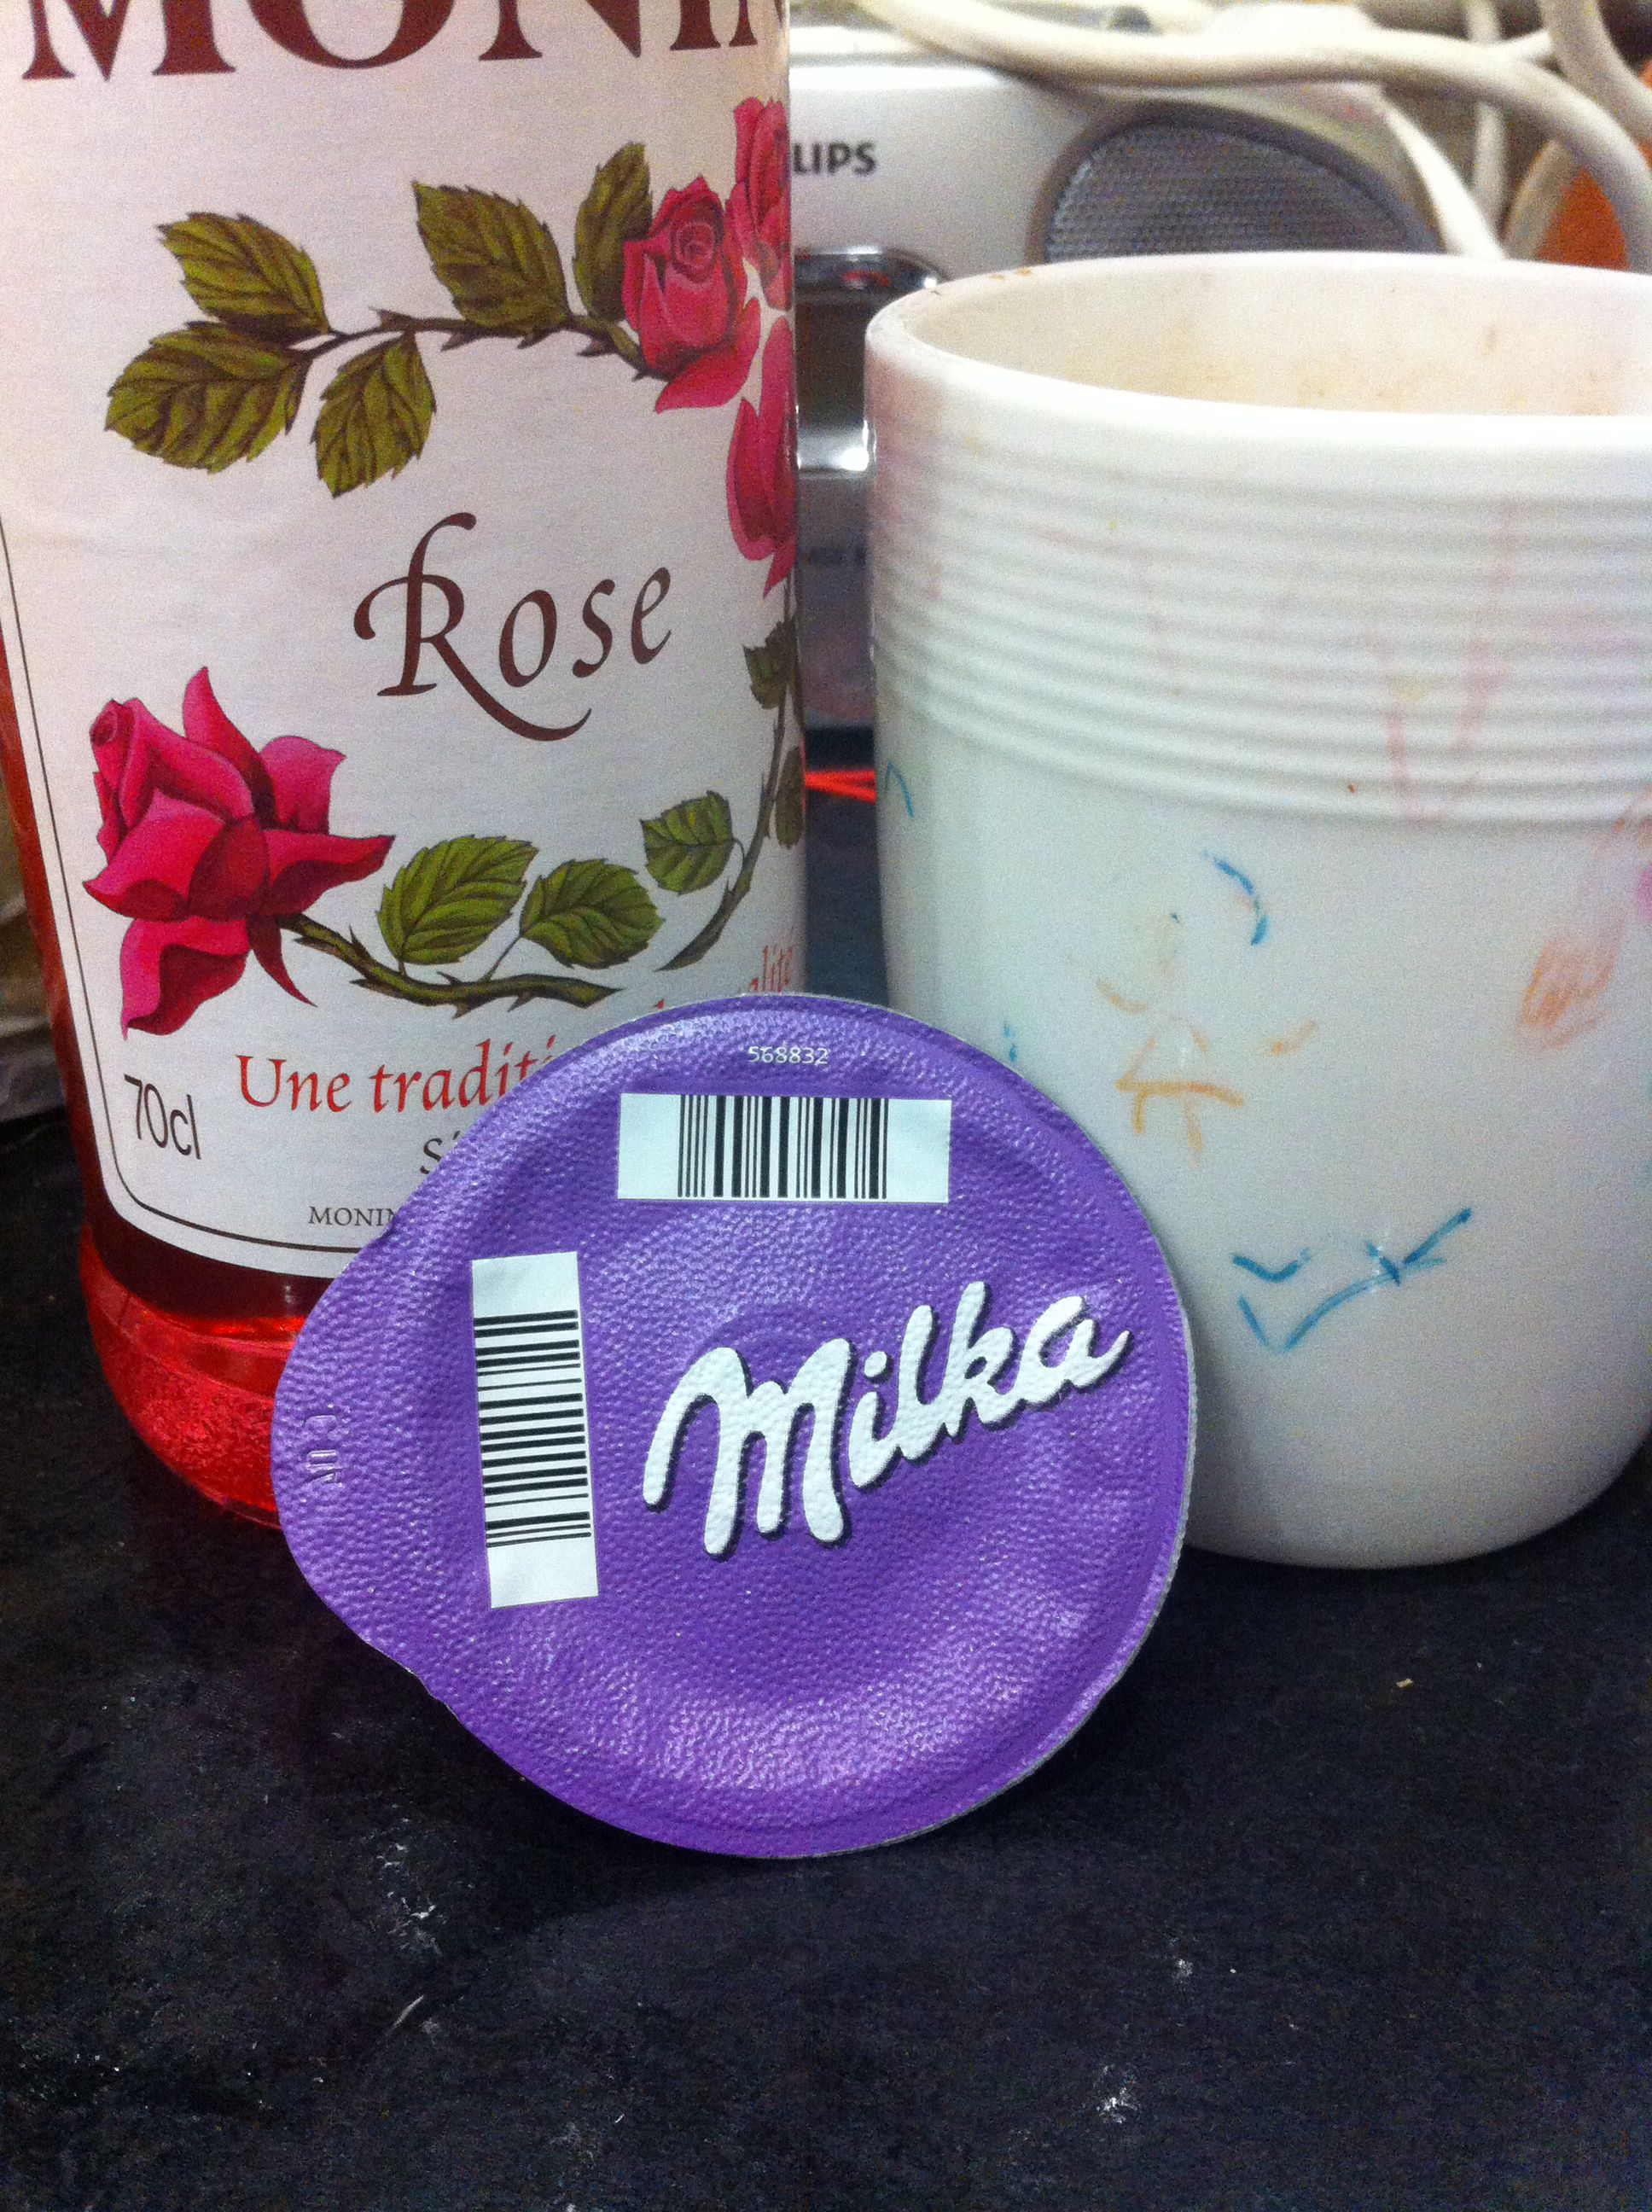 Turkish Delight Hot Chocolate 1tsp Rose Syrup To 1 Milka